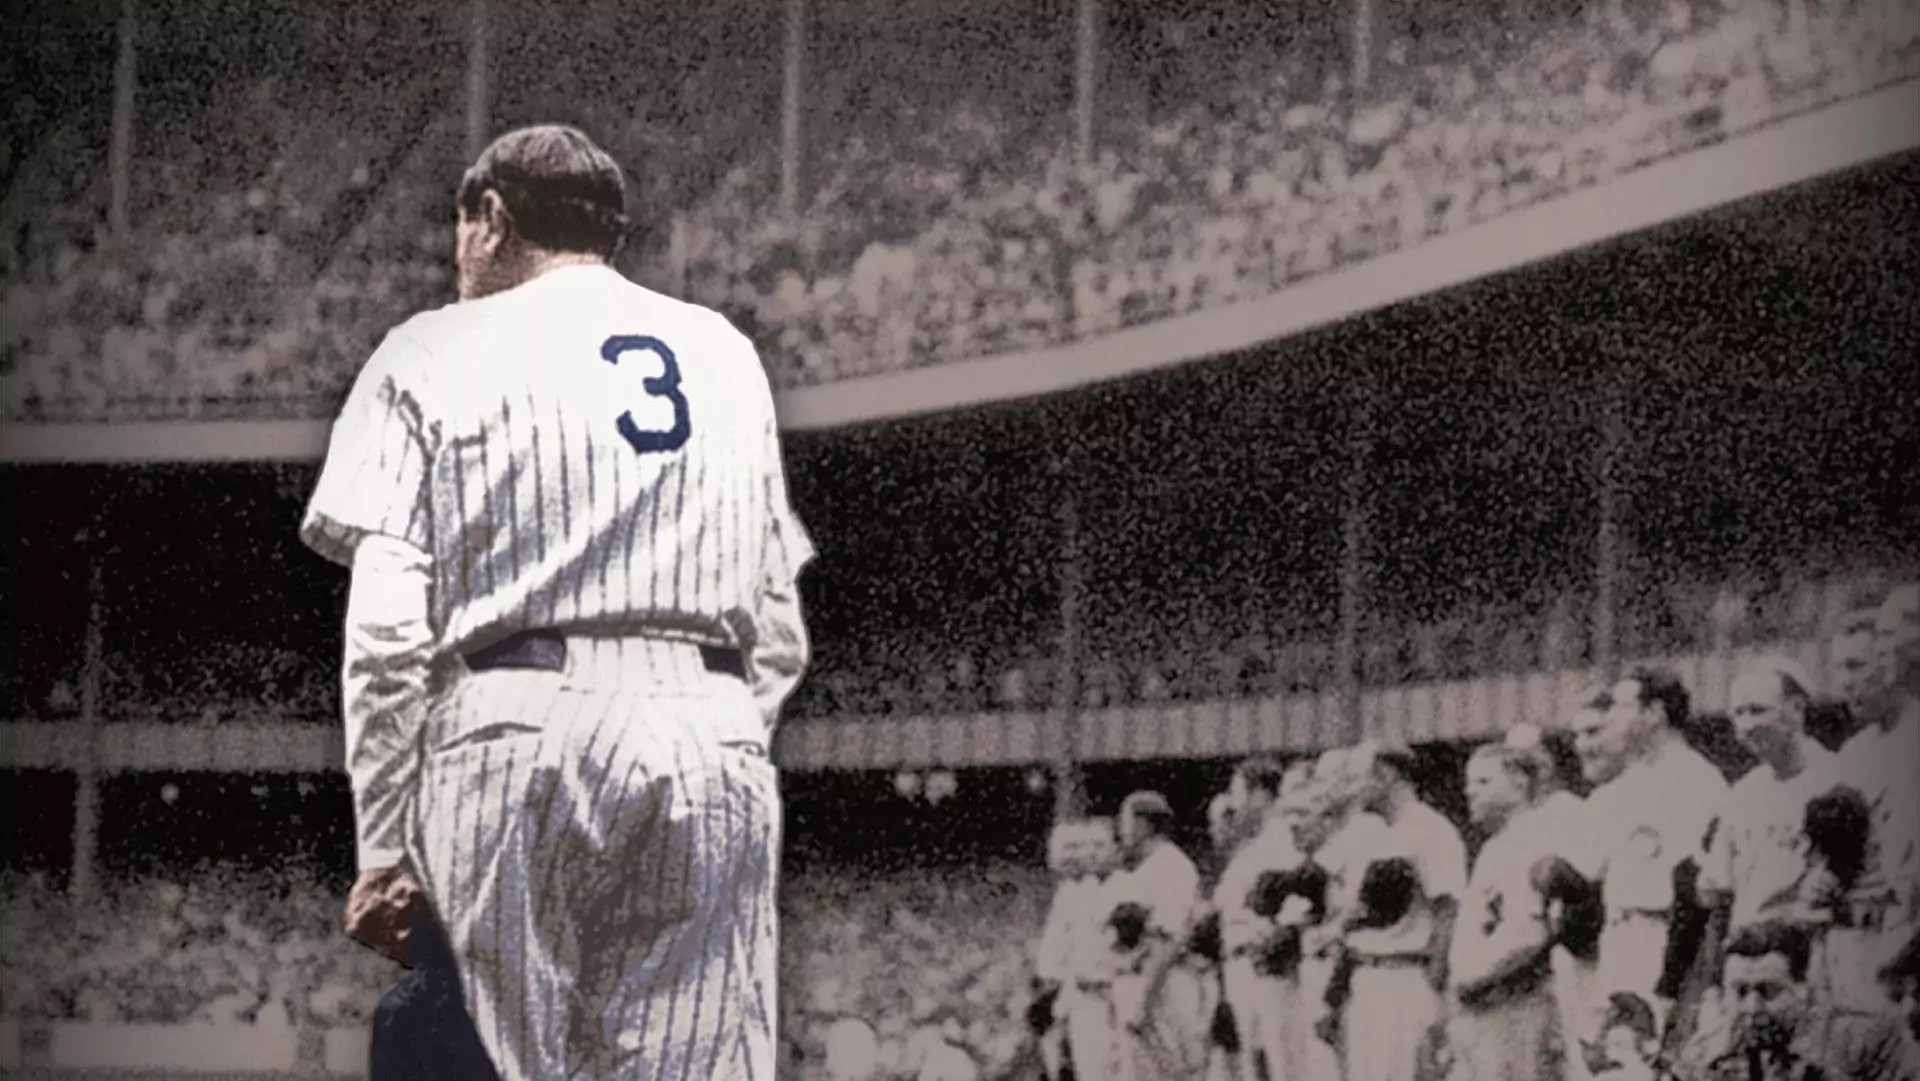 A baseball player stands in the middle of a packed stadium.